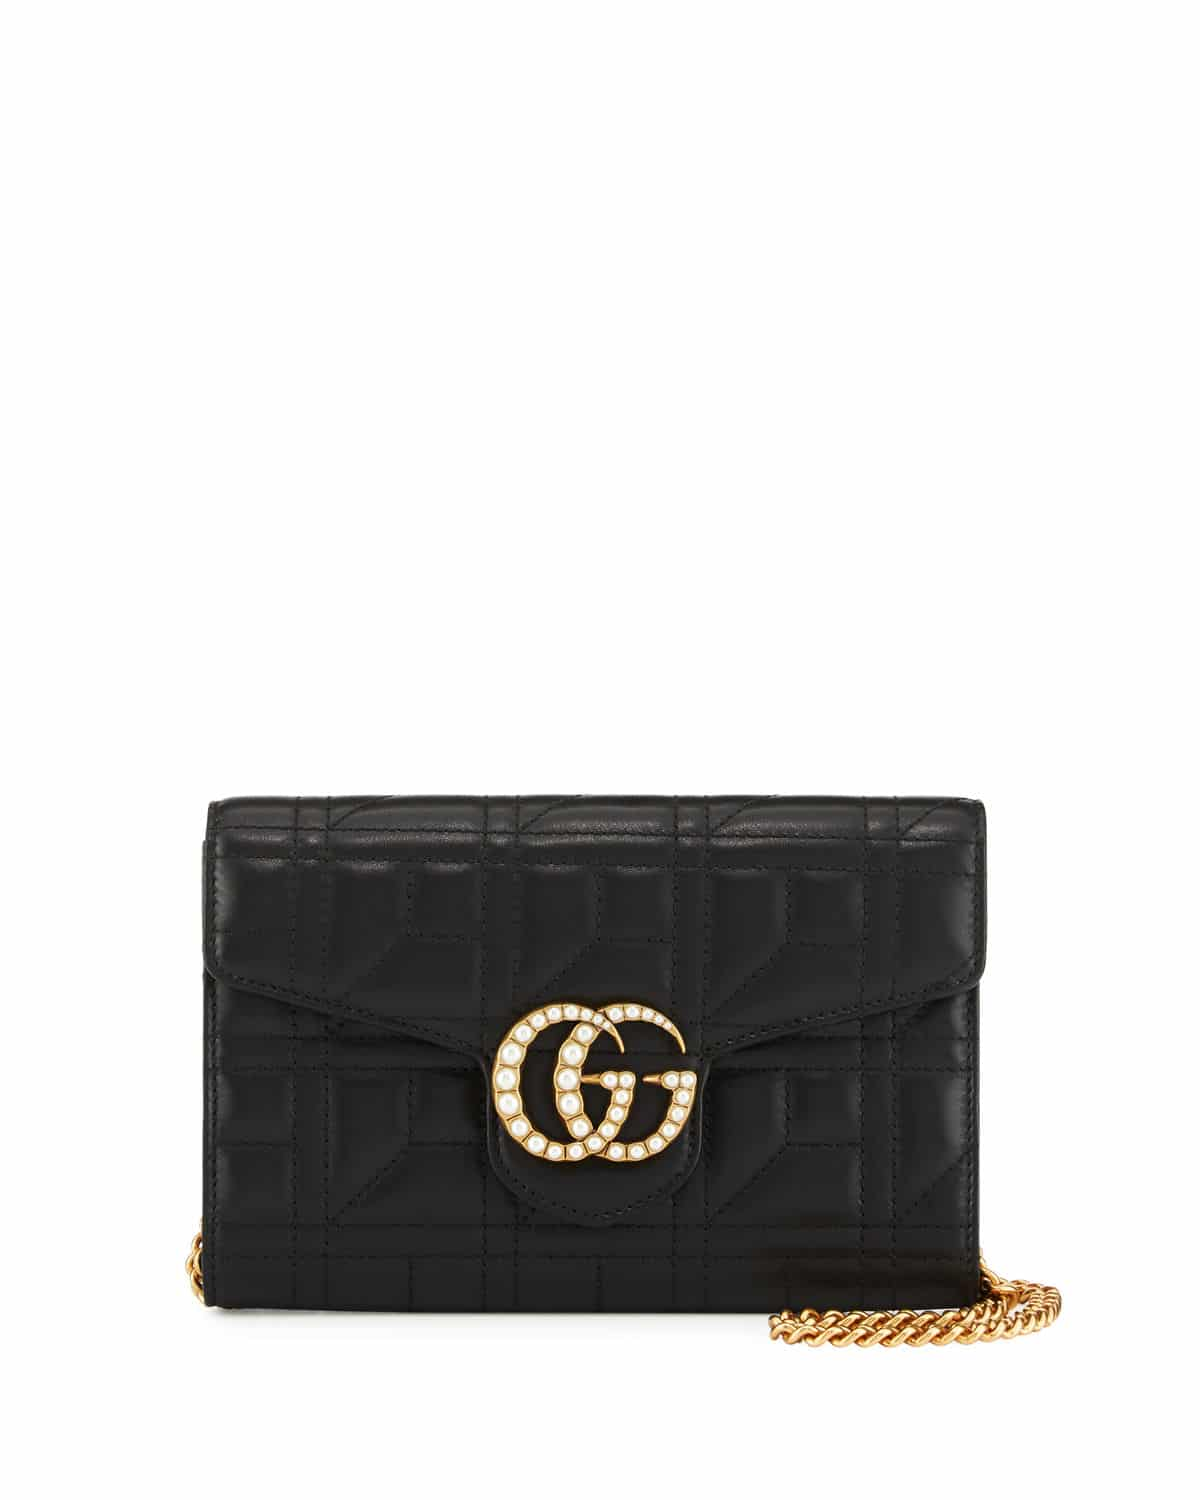 c9f4d713aae Gucci Resort 2017 Bag Collection – Spotted Fashion Gucci - Bardot Burgundy  GG Canvas Bag with Wallet